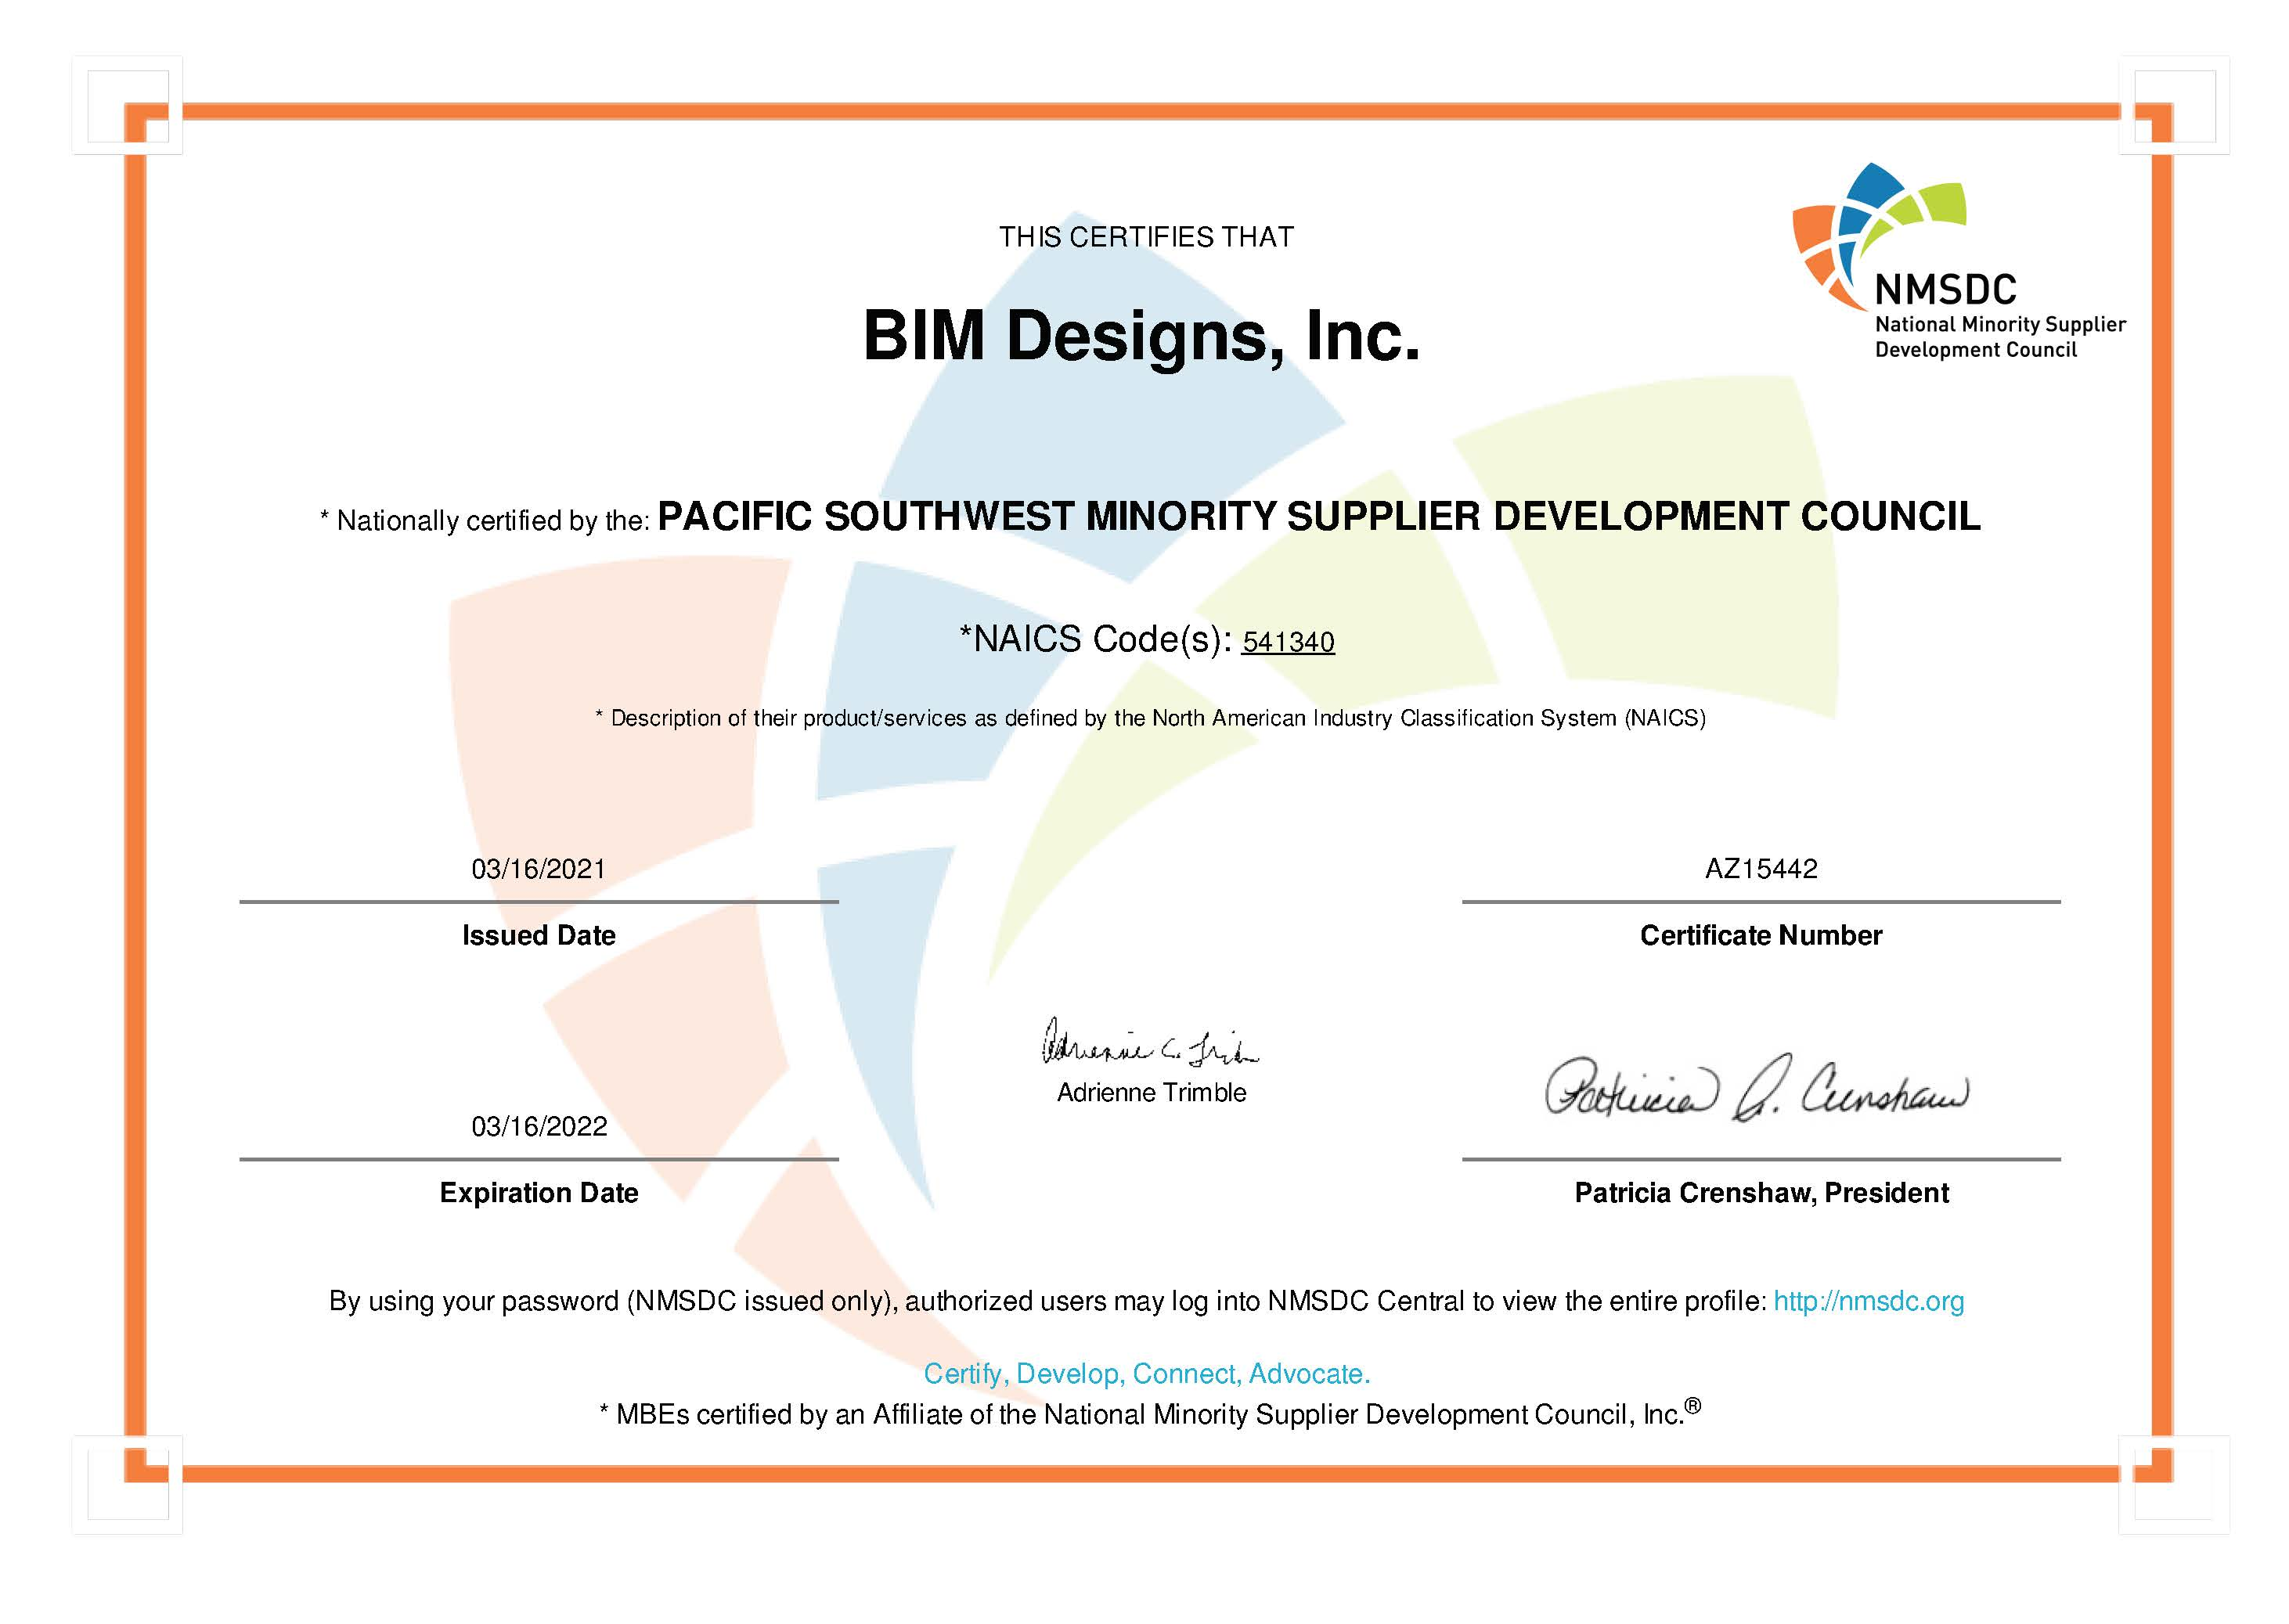 NMSDC Certificate